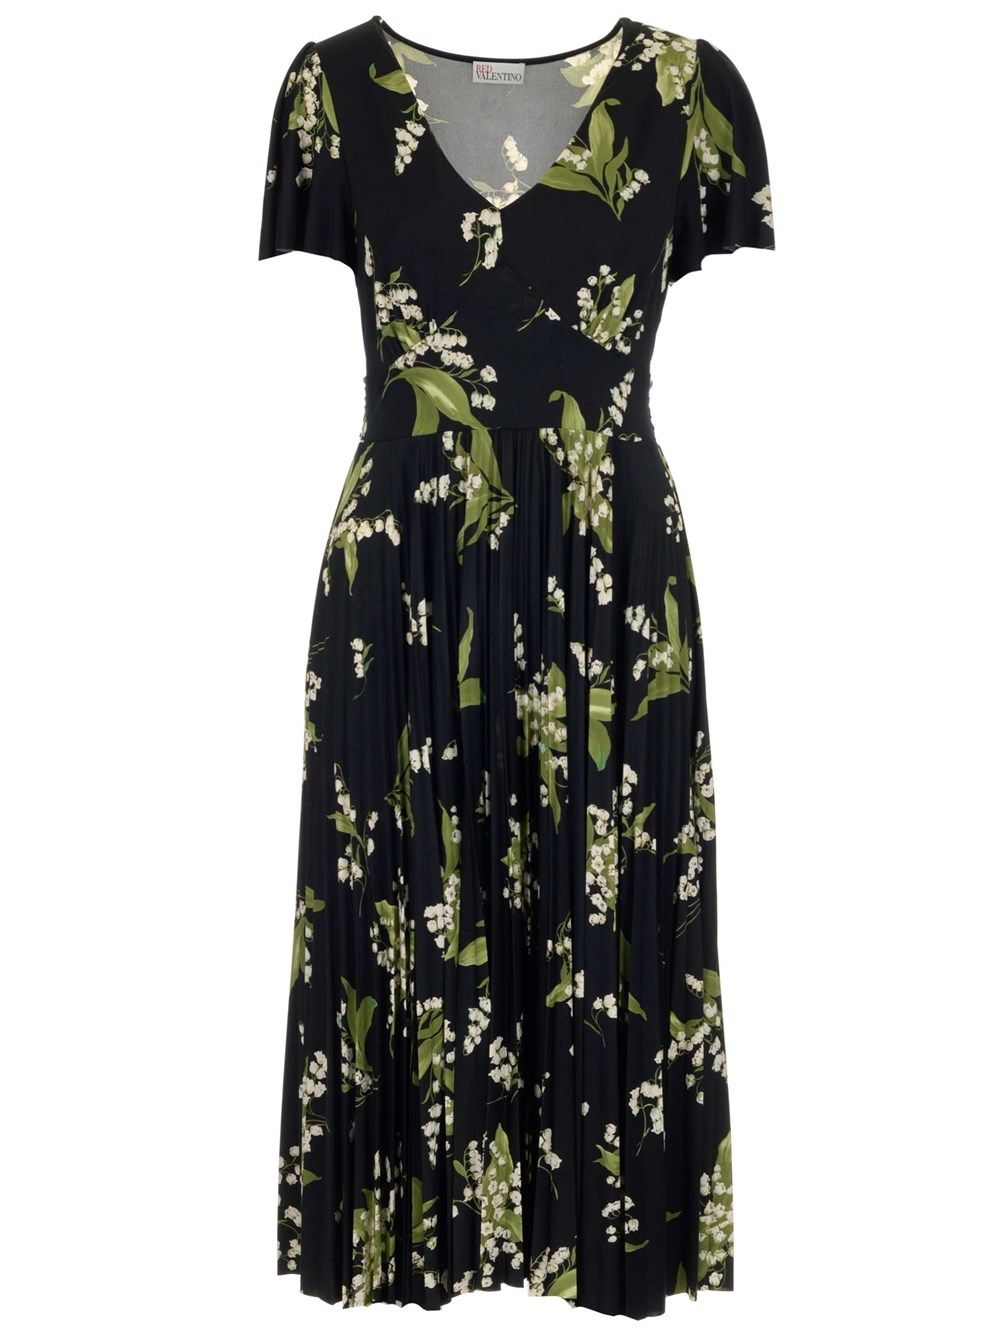 Red Valentino Dresses RED VALENTINO WOMEN'S BLACK OTHER MATERIALS DRESS